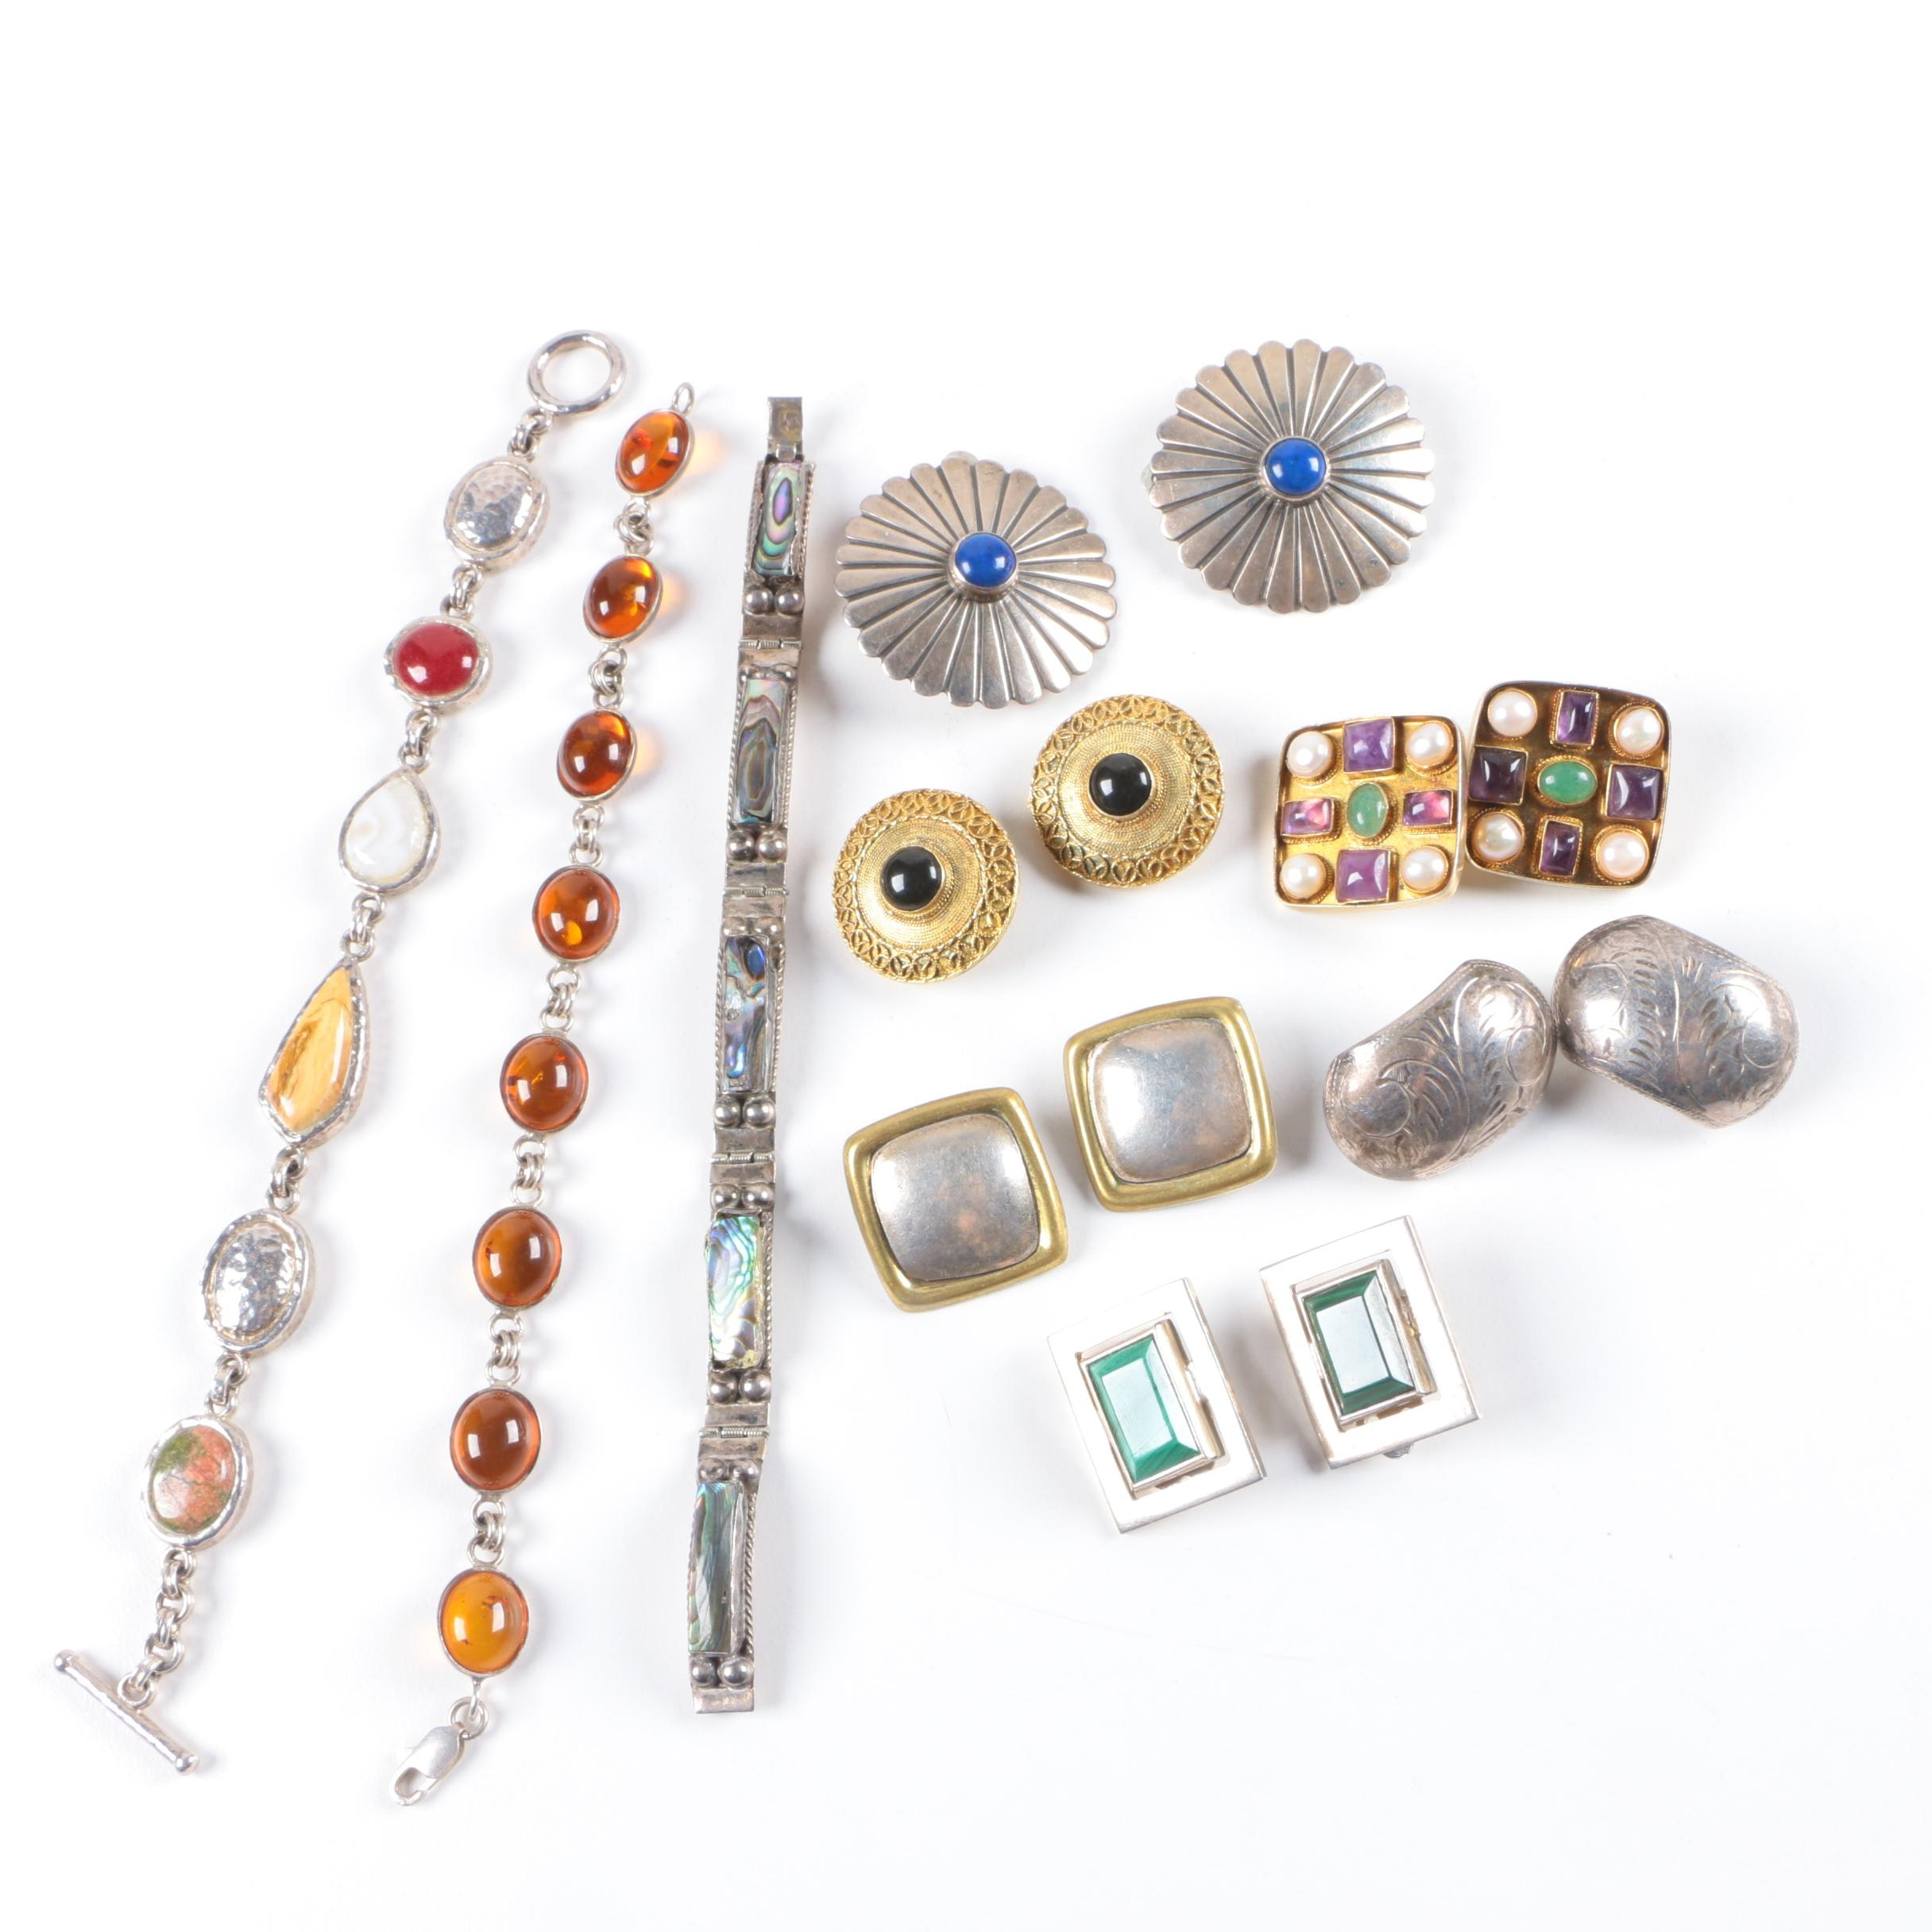 Assortment of Sterling Silver Bracelets and Earrings Including Abalone